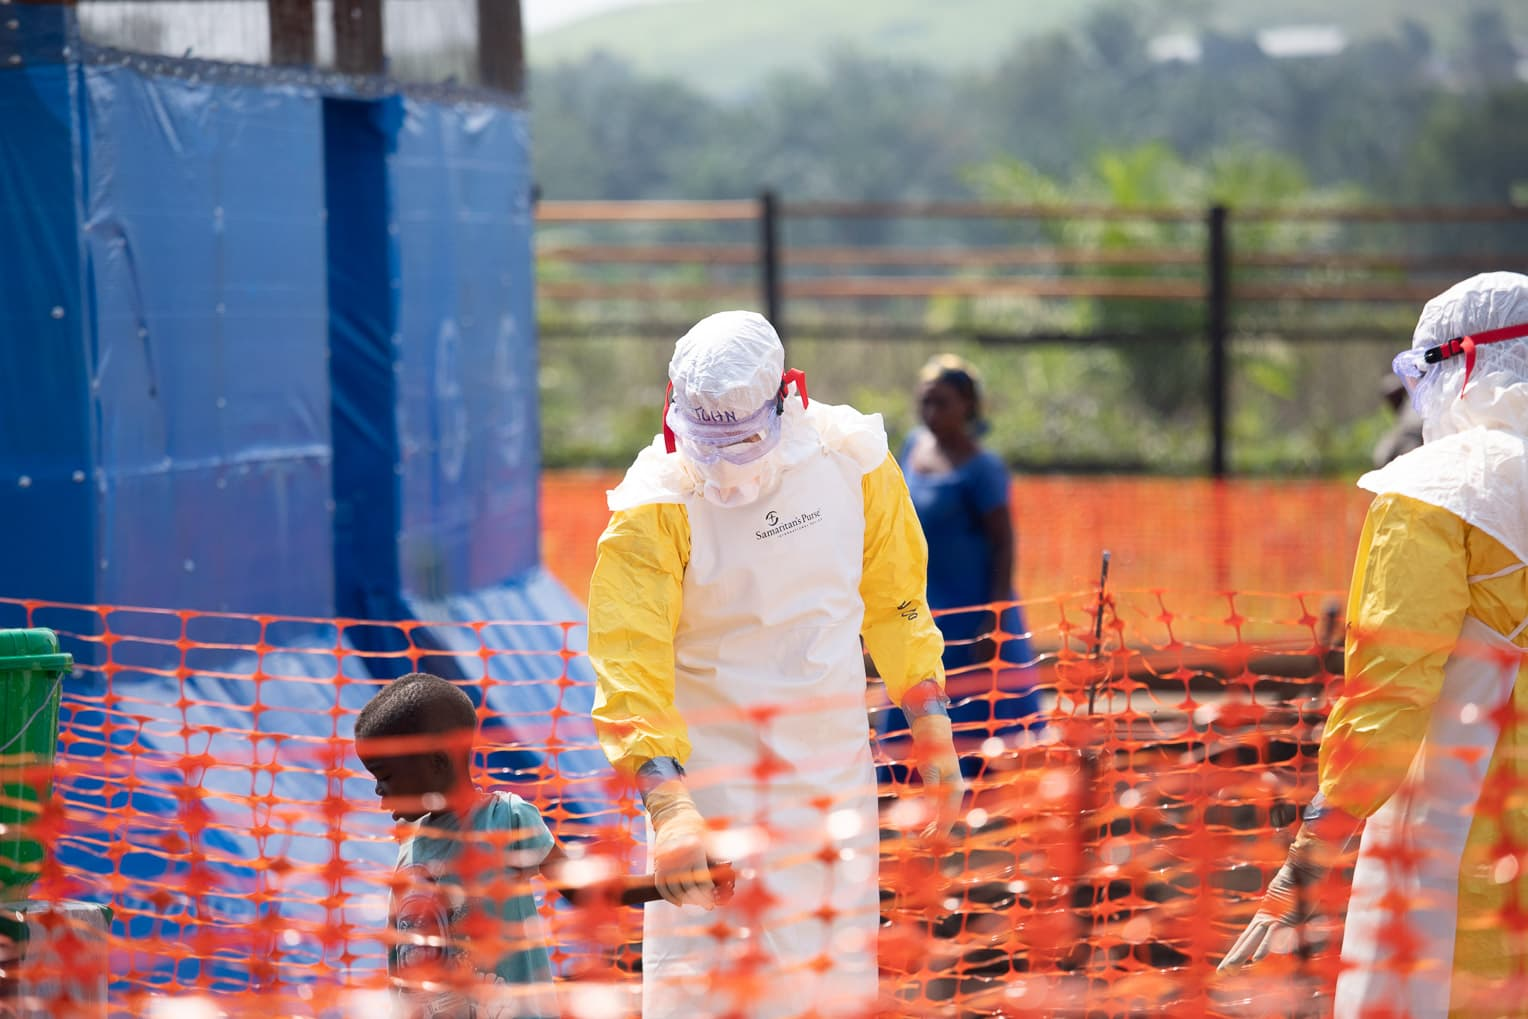 After a report of deadly Ebola virus outbreaks in the Democratic Republic of Congo, Samaritan's Purse airlifted medical teams and supplies to the country.